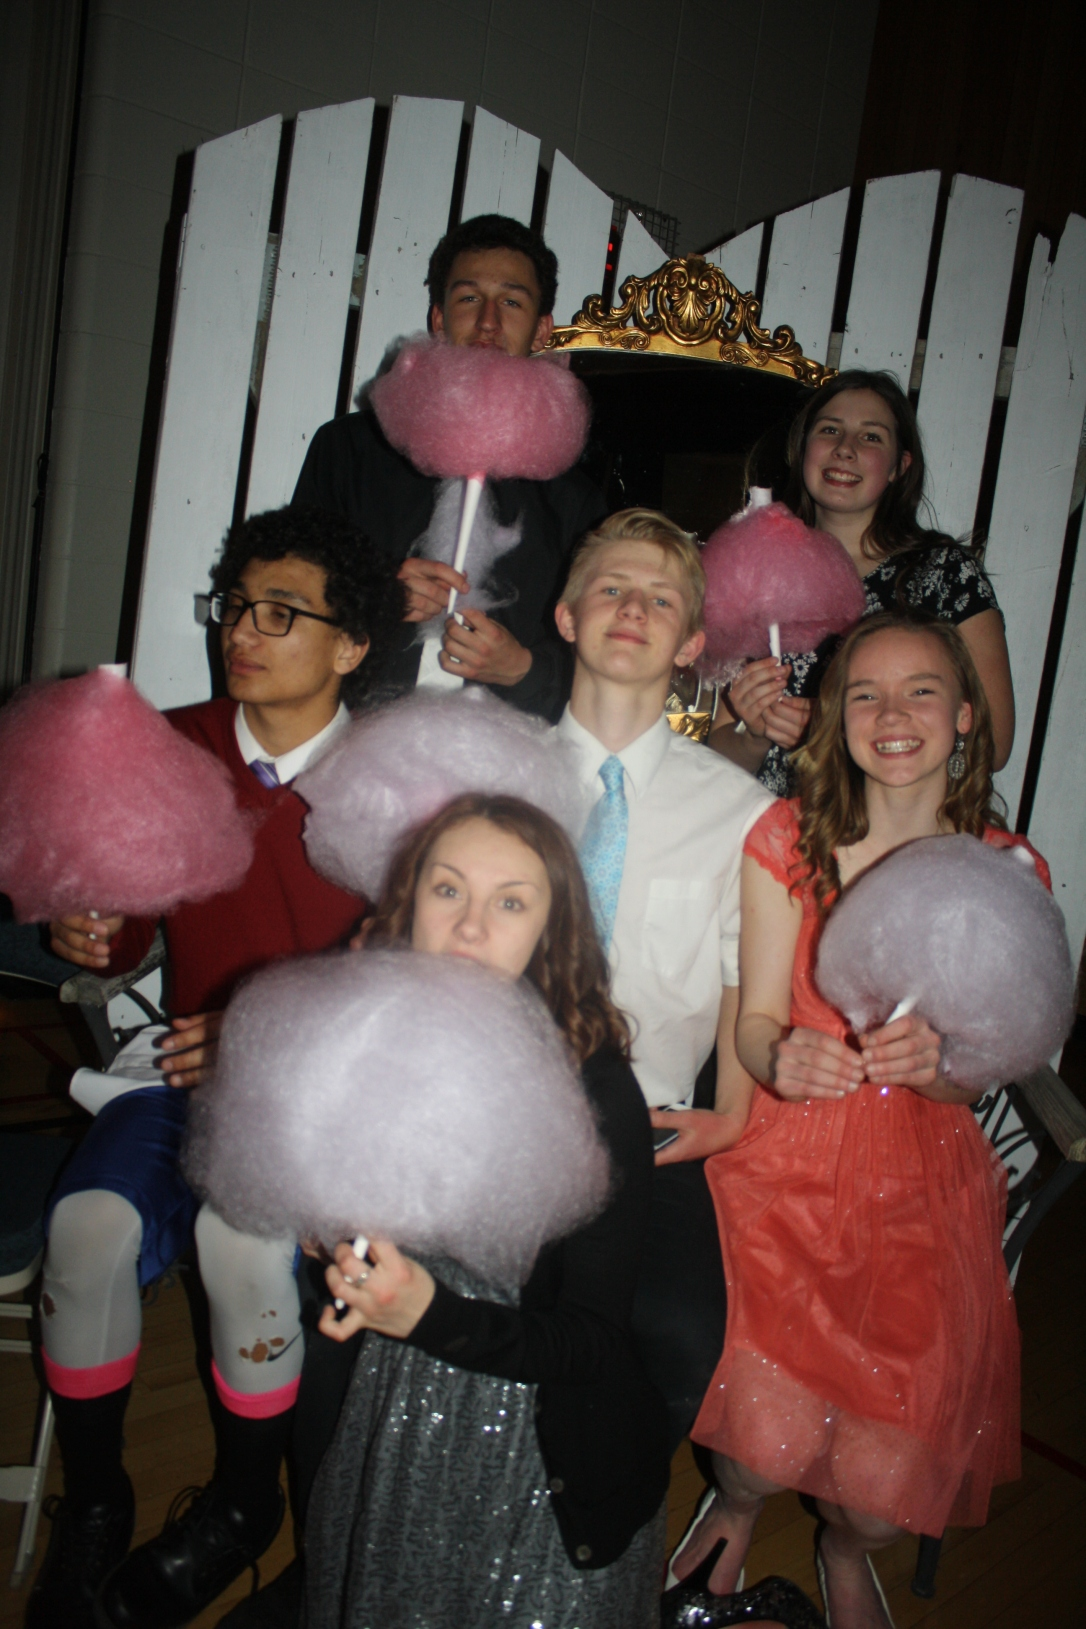 grad cotton candy and kids